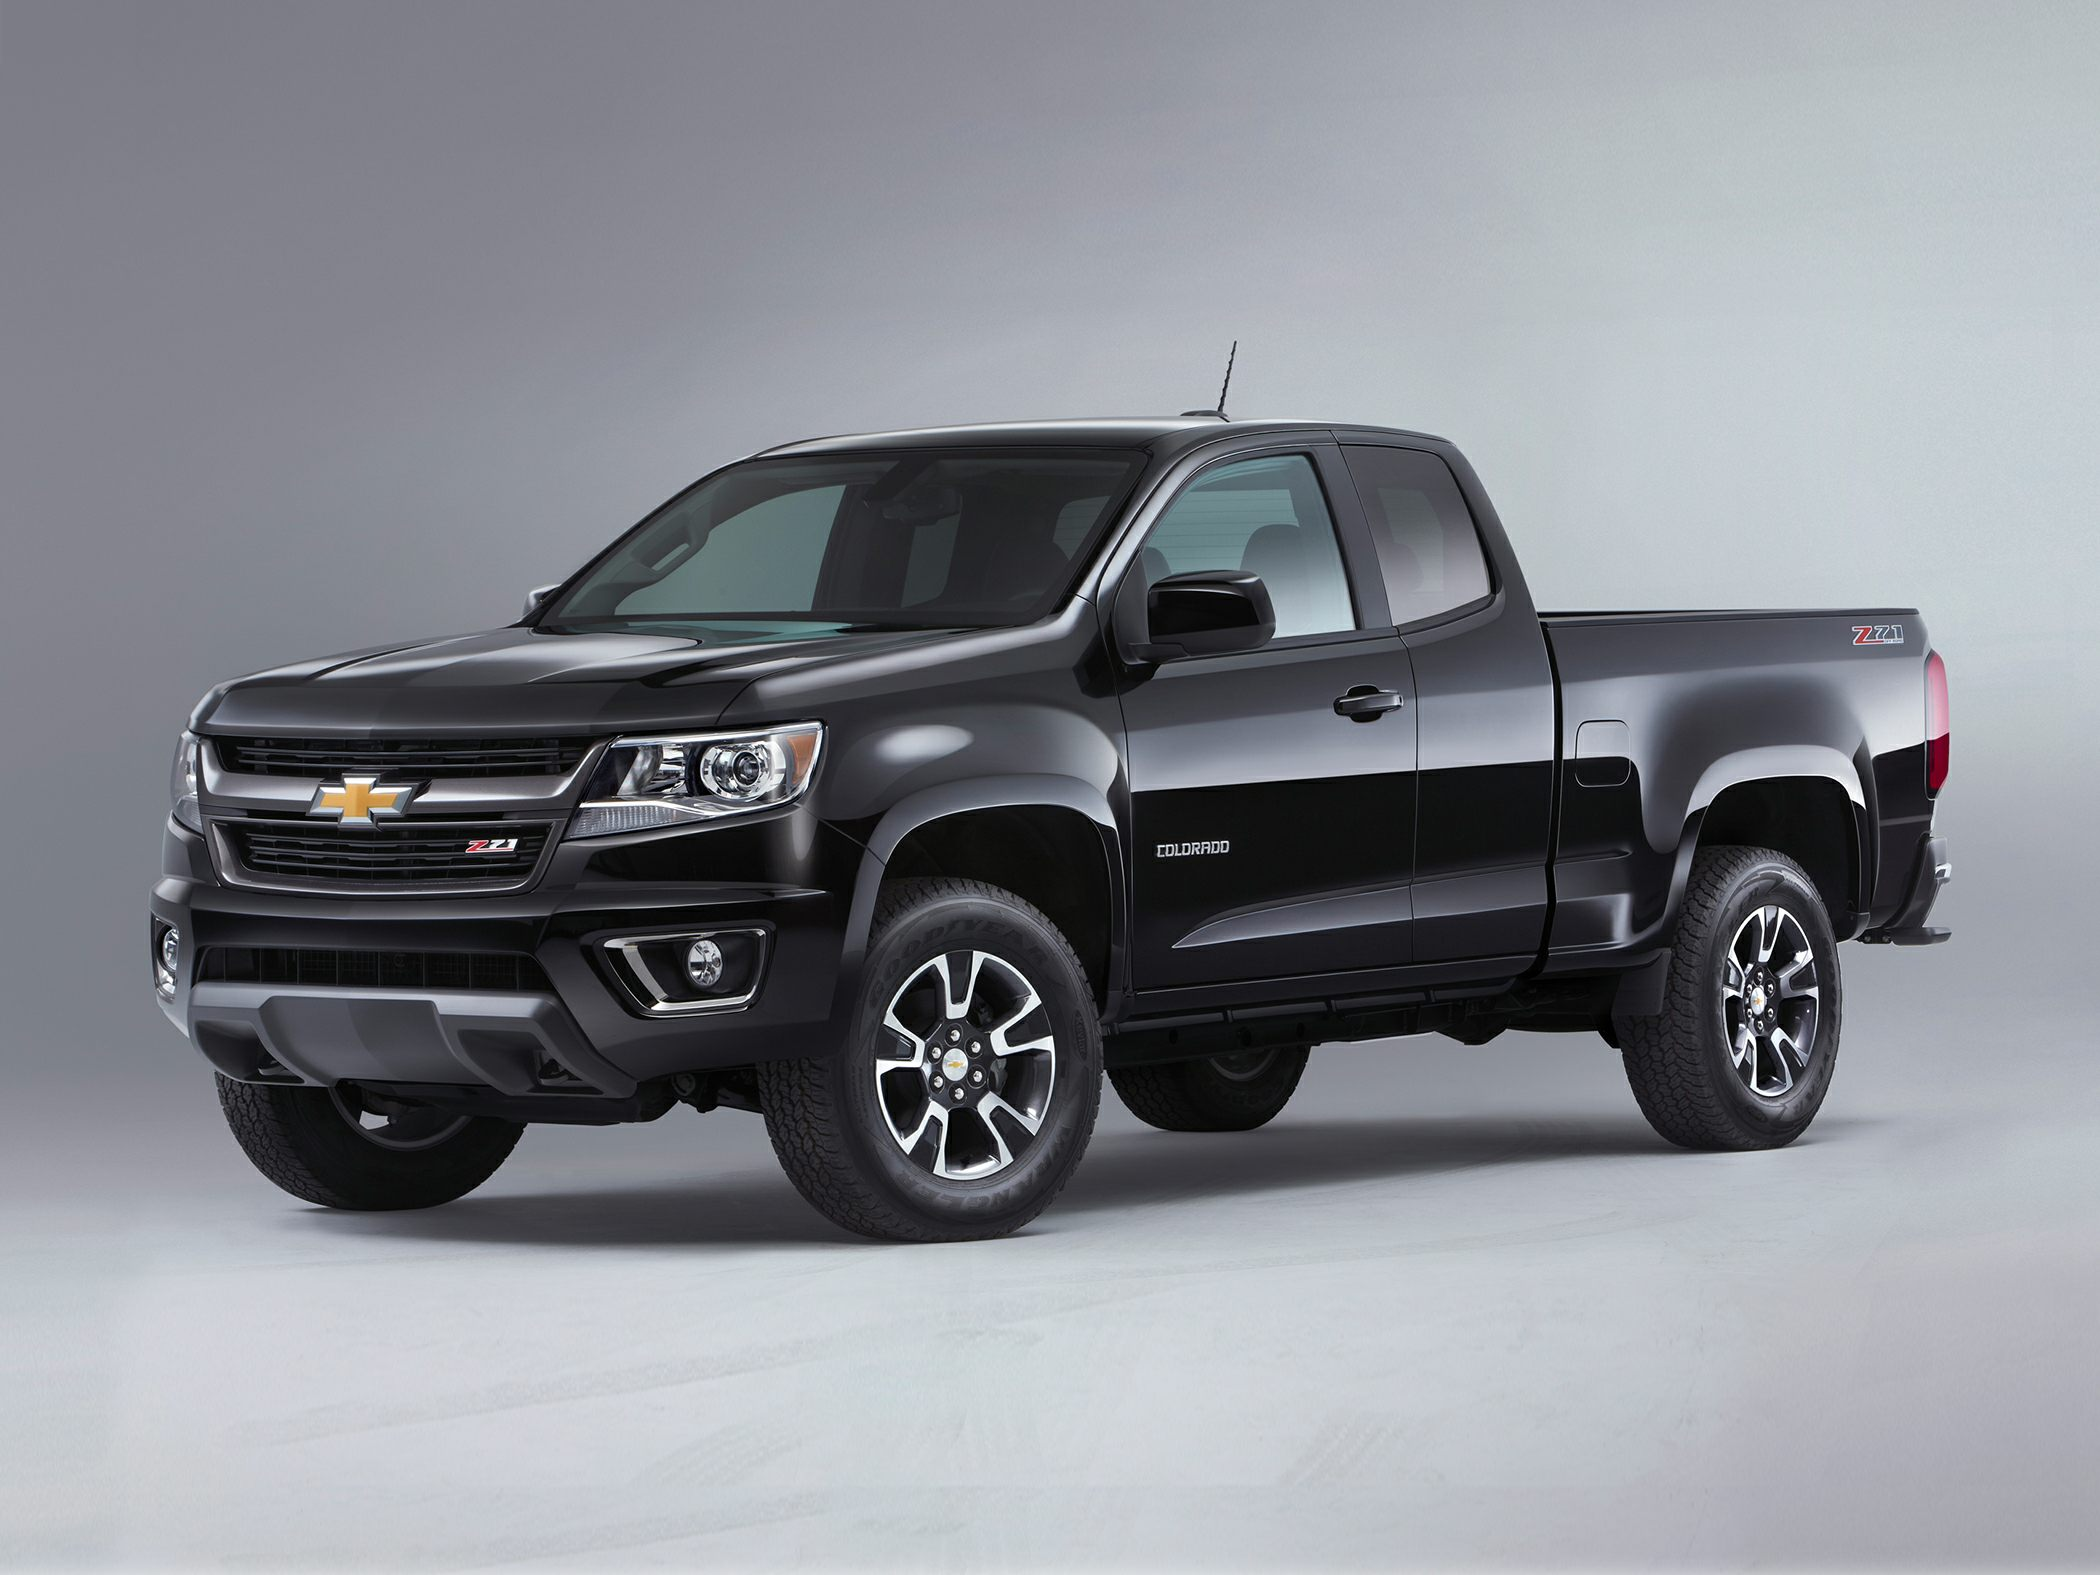 2018 Chevrolet Colorado Deals, Prices, Incentives & Leases ...